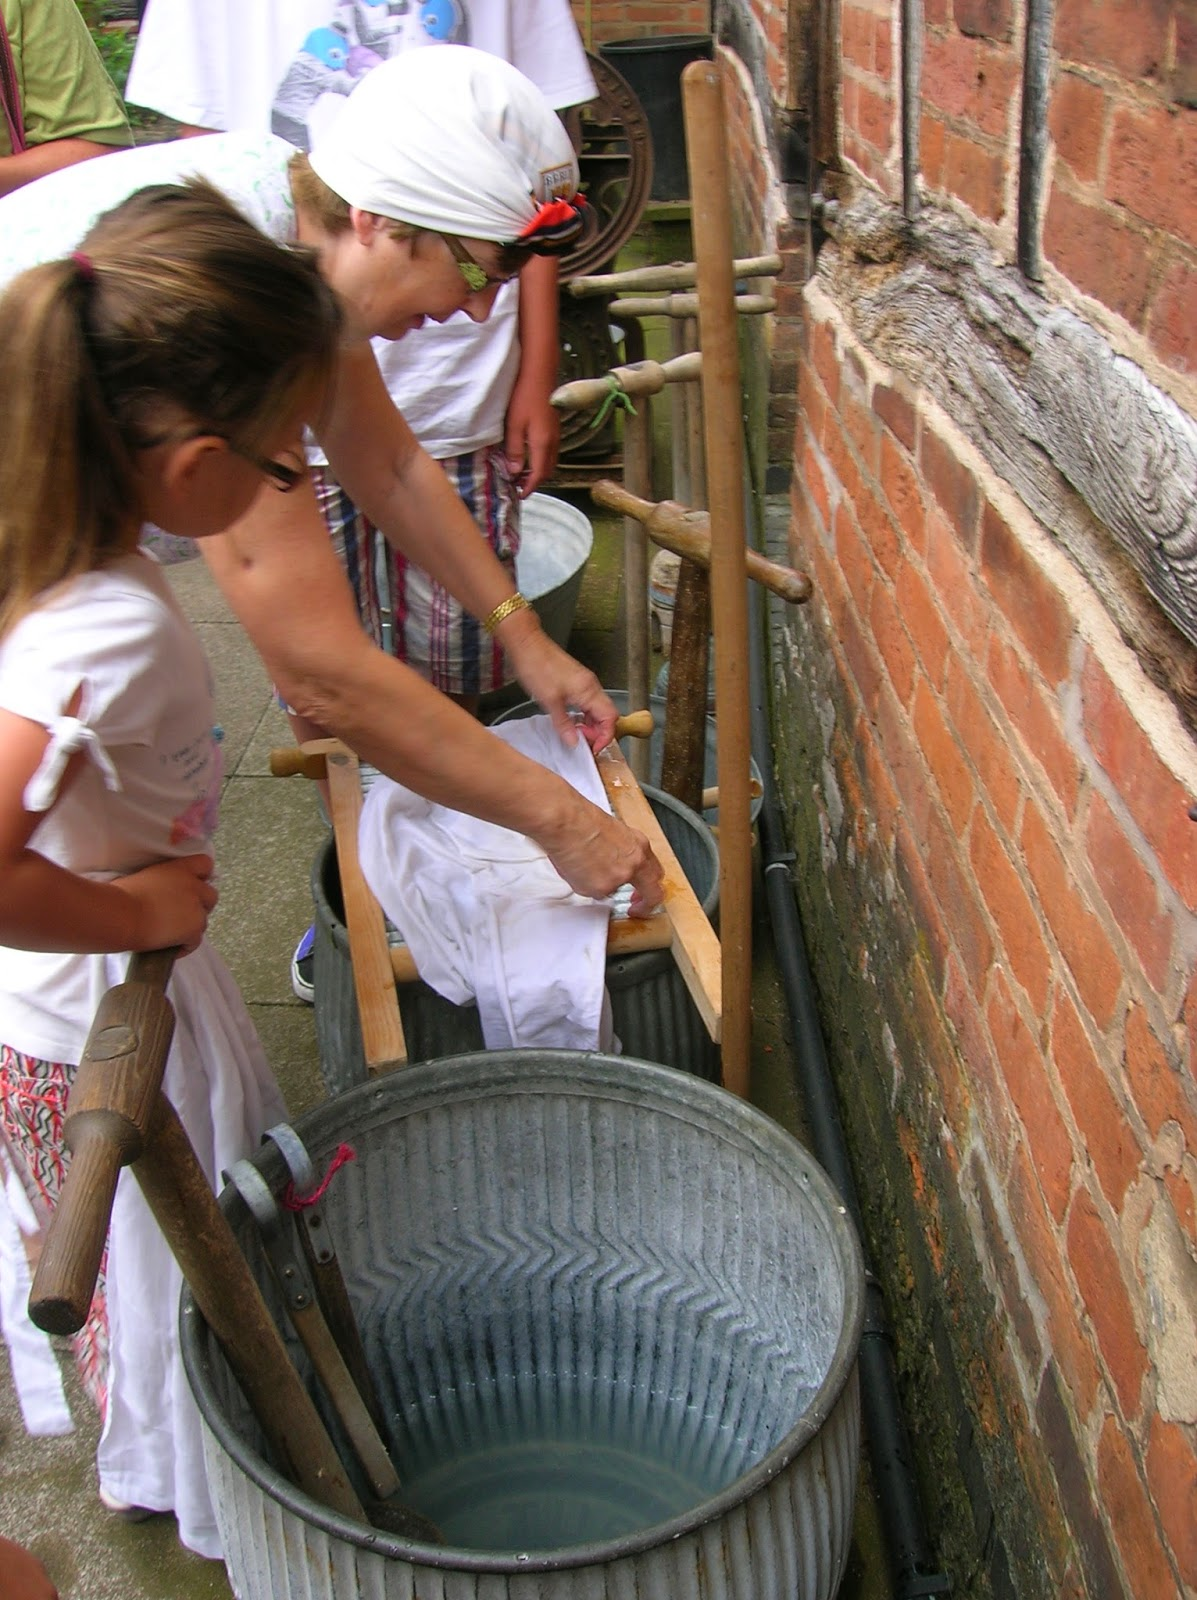 Washing the old fashioned way at Hinckley Museum